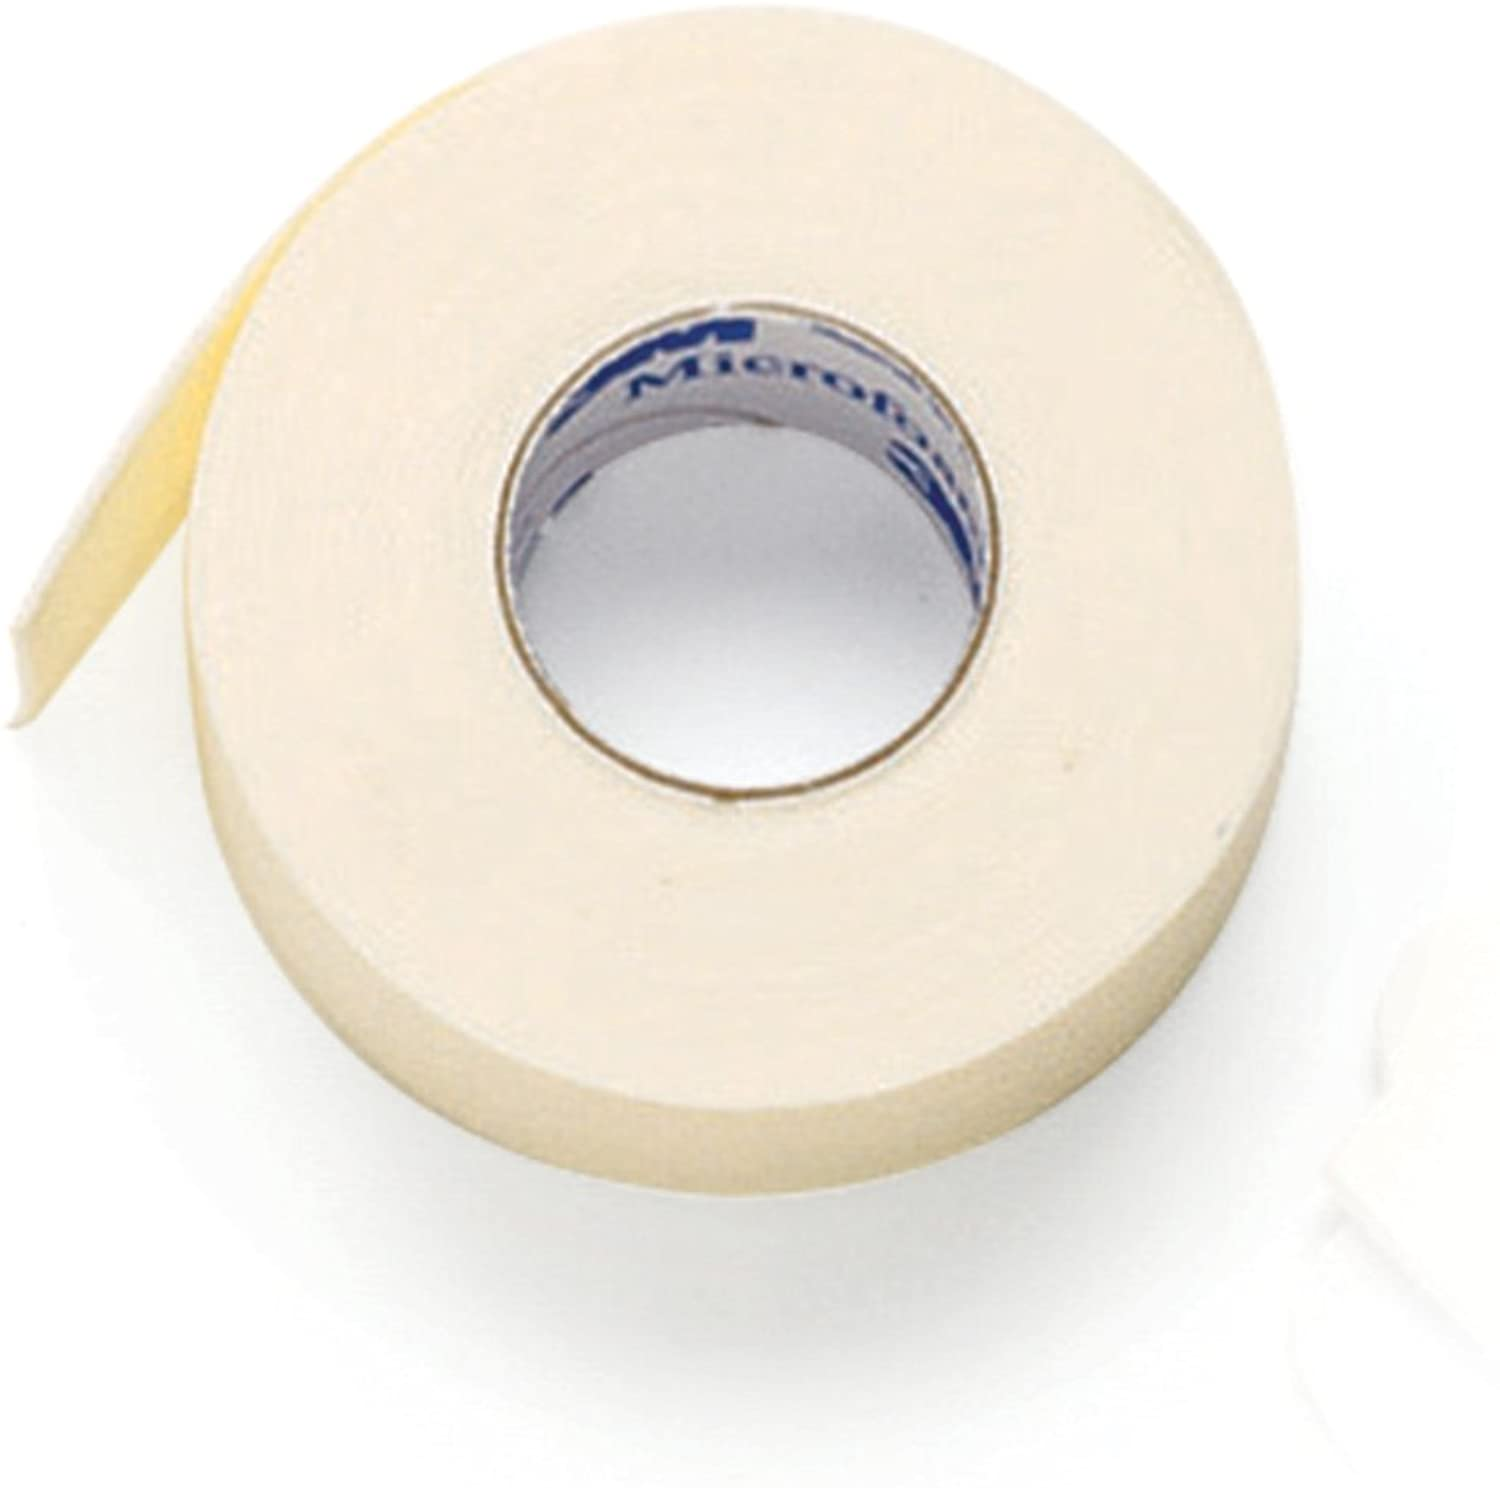 Toe Wrap Foam Tape GMTW One-Size